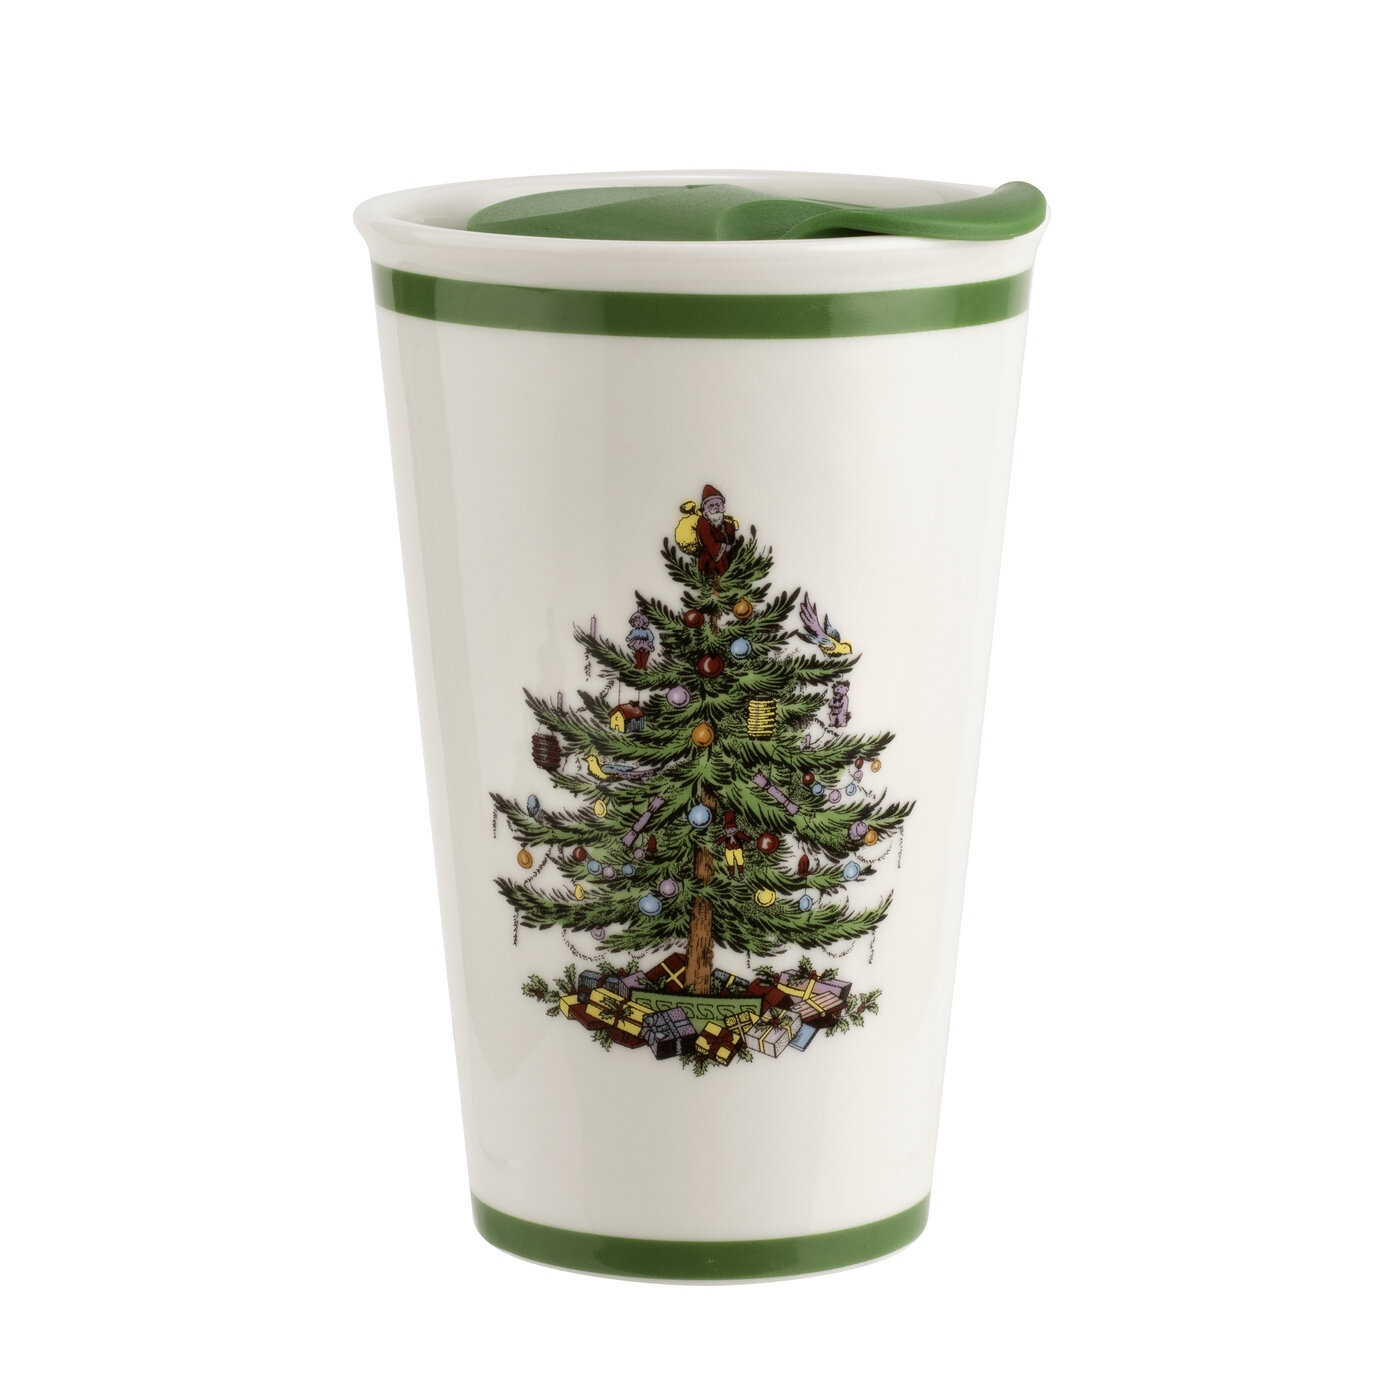 Spode Christmas Tree Travel Mug With Lid image number 0